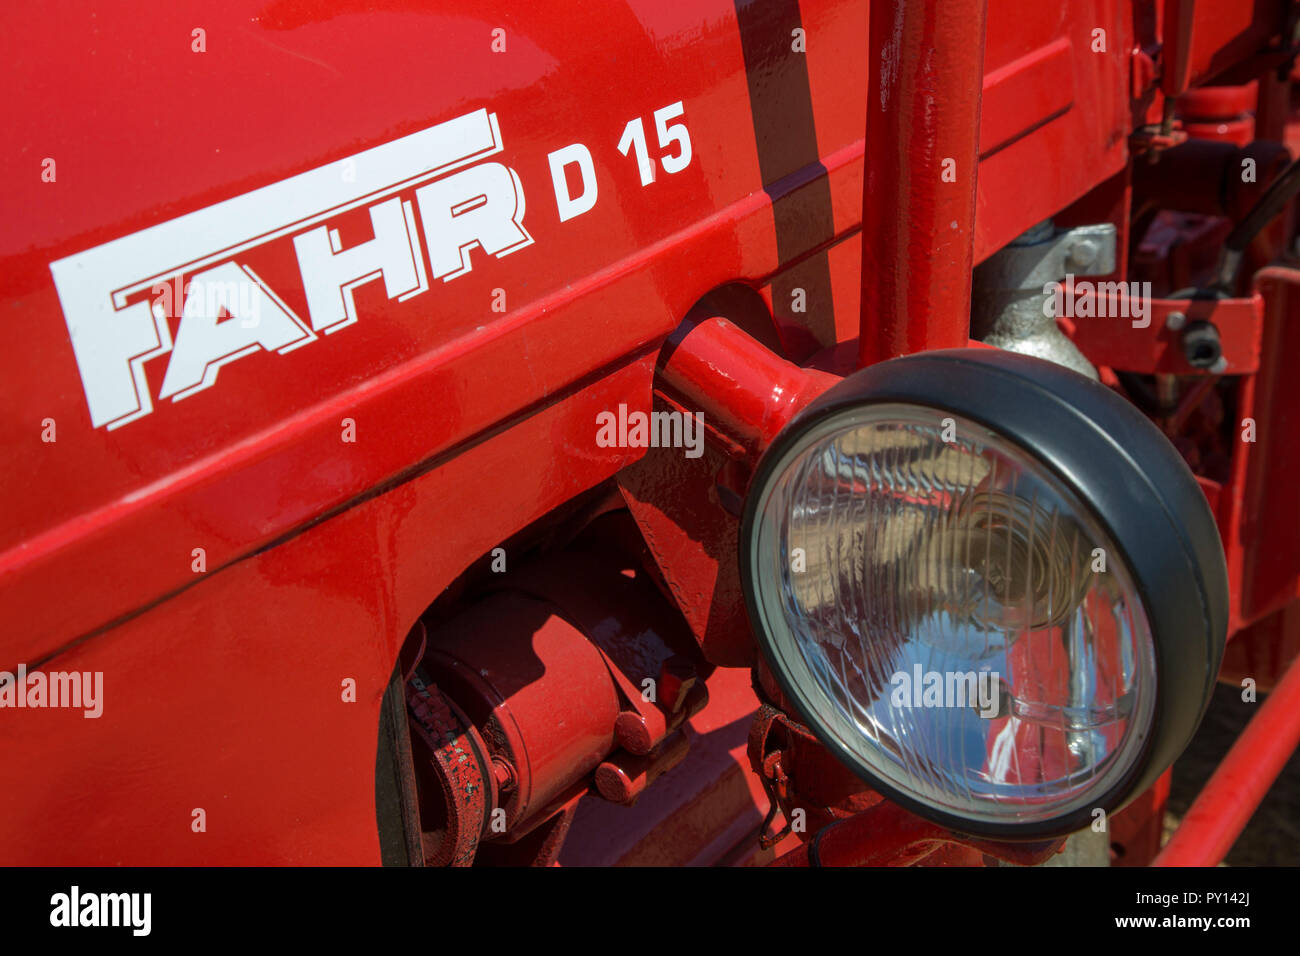 Close-up of red oldtimer diesel tractor Fahr D15 - Stock Image